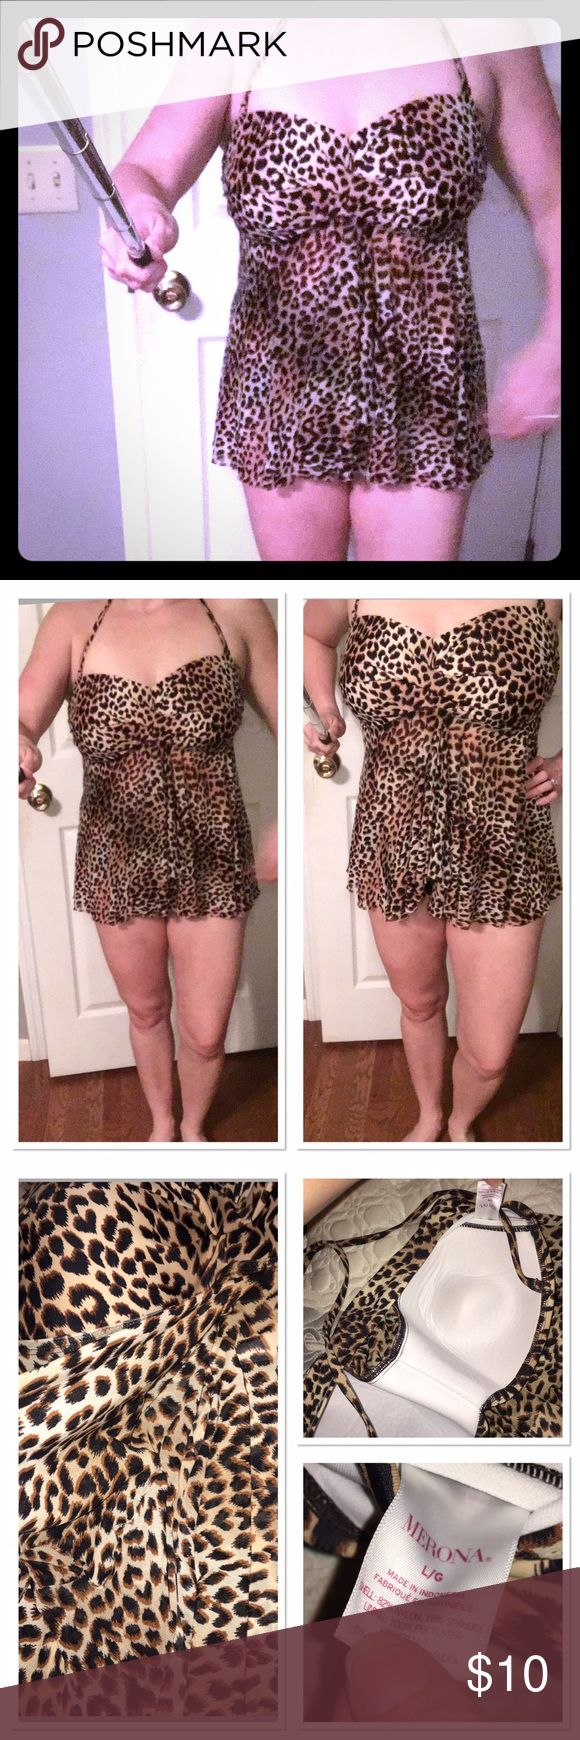 Leopard Tankini Top Super cute leopard tankini top. The cups has padding and the bottom is a Chiffon type material overlay. I just wore plain black bottoms with this and I also used as a maternity Swimsuit since the bottom portion opens. It's a little big on me now which is why I'm selling it, perfect for anyone who still wants to look trendy and cute but cover up too! Merona Swim